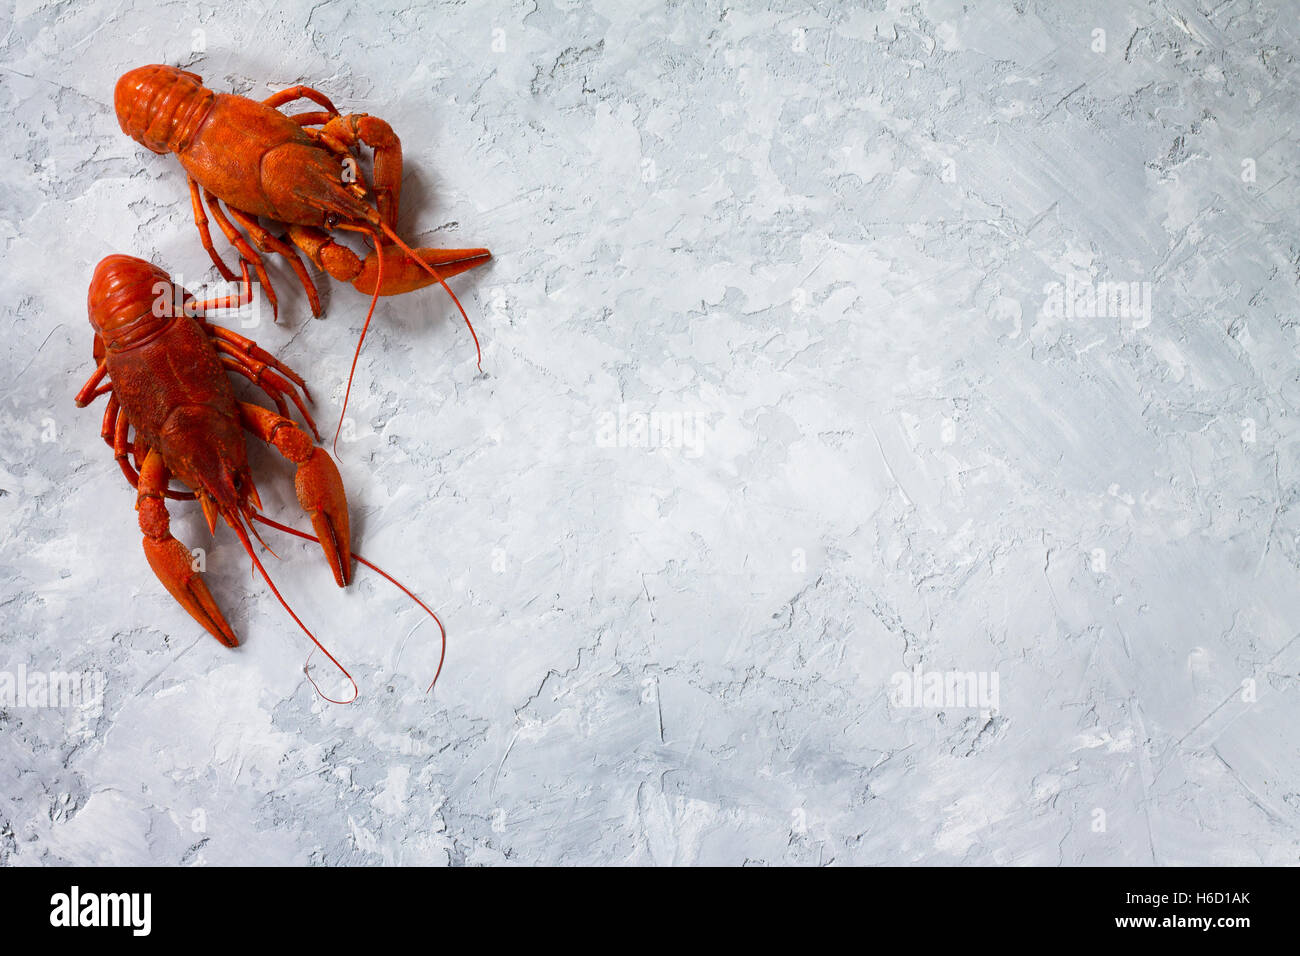 Boiled crayfish, selective focus. Food background. The concept of healthy eating. - Stock Image